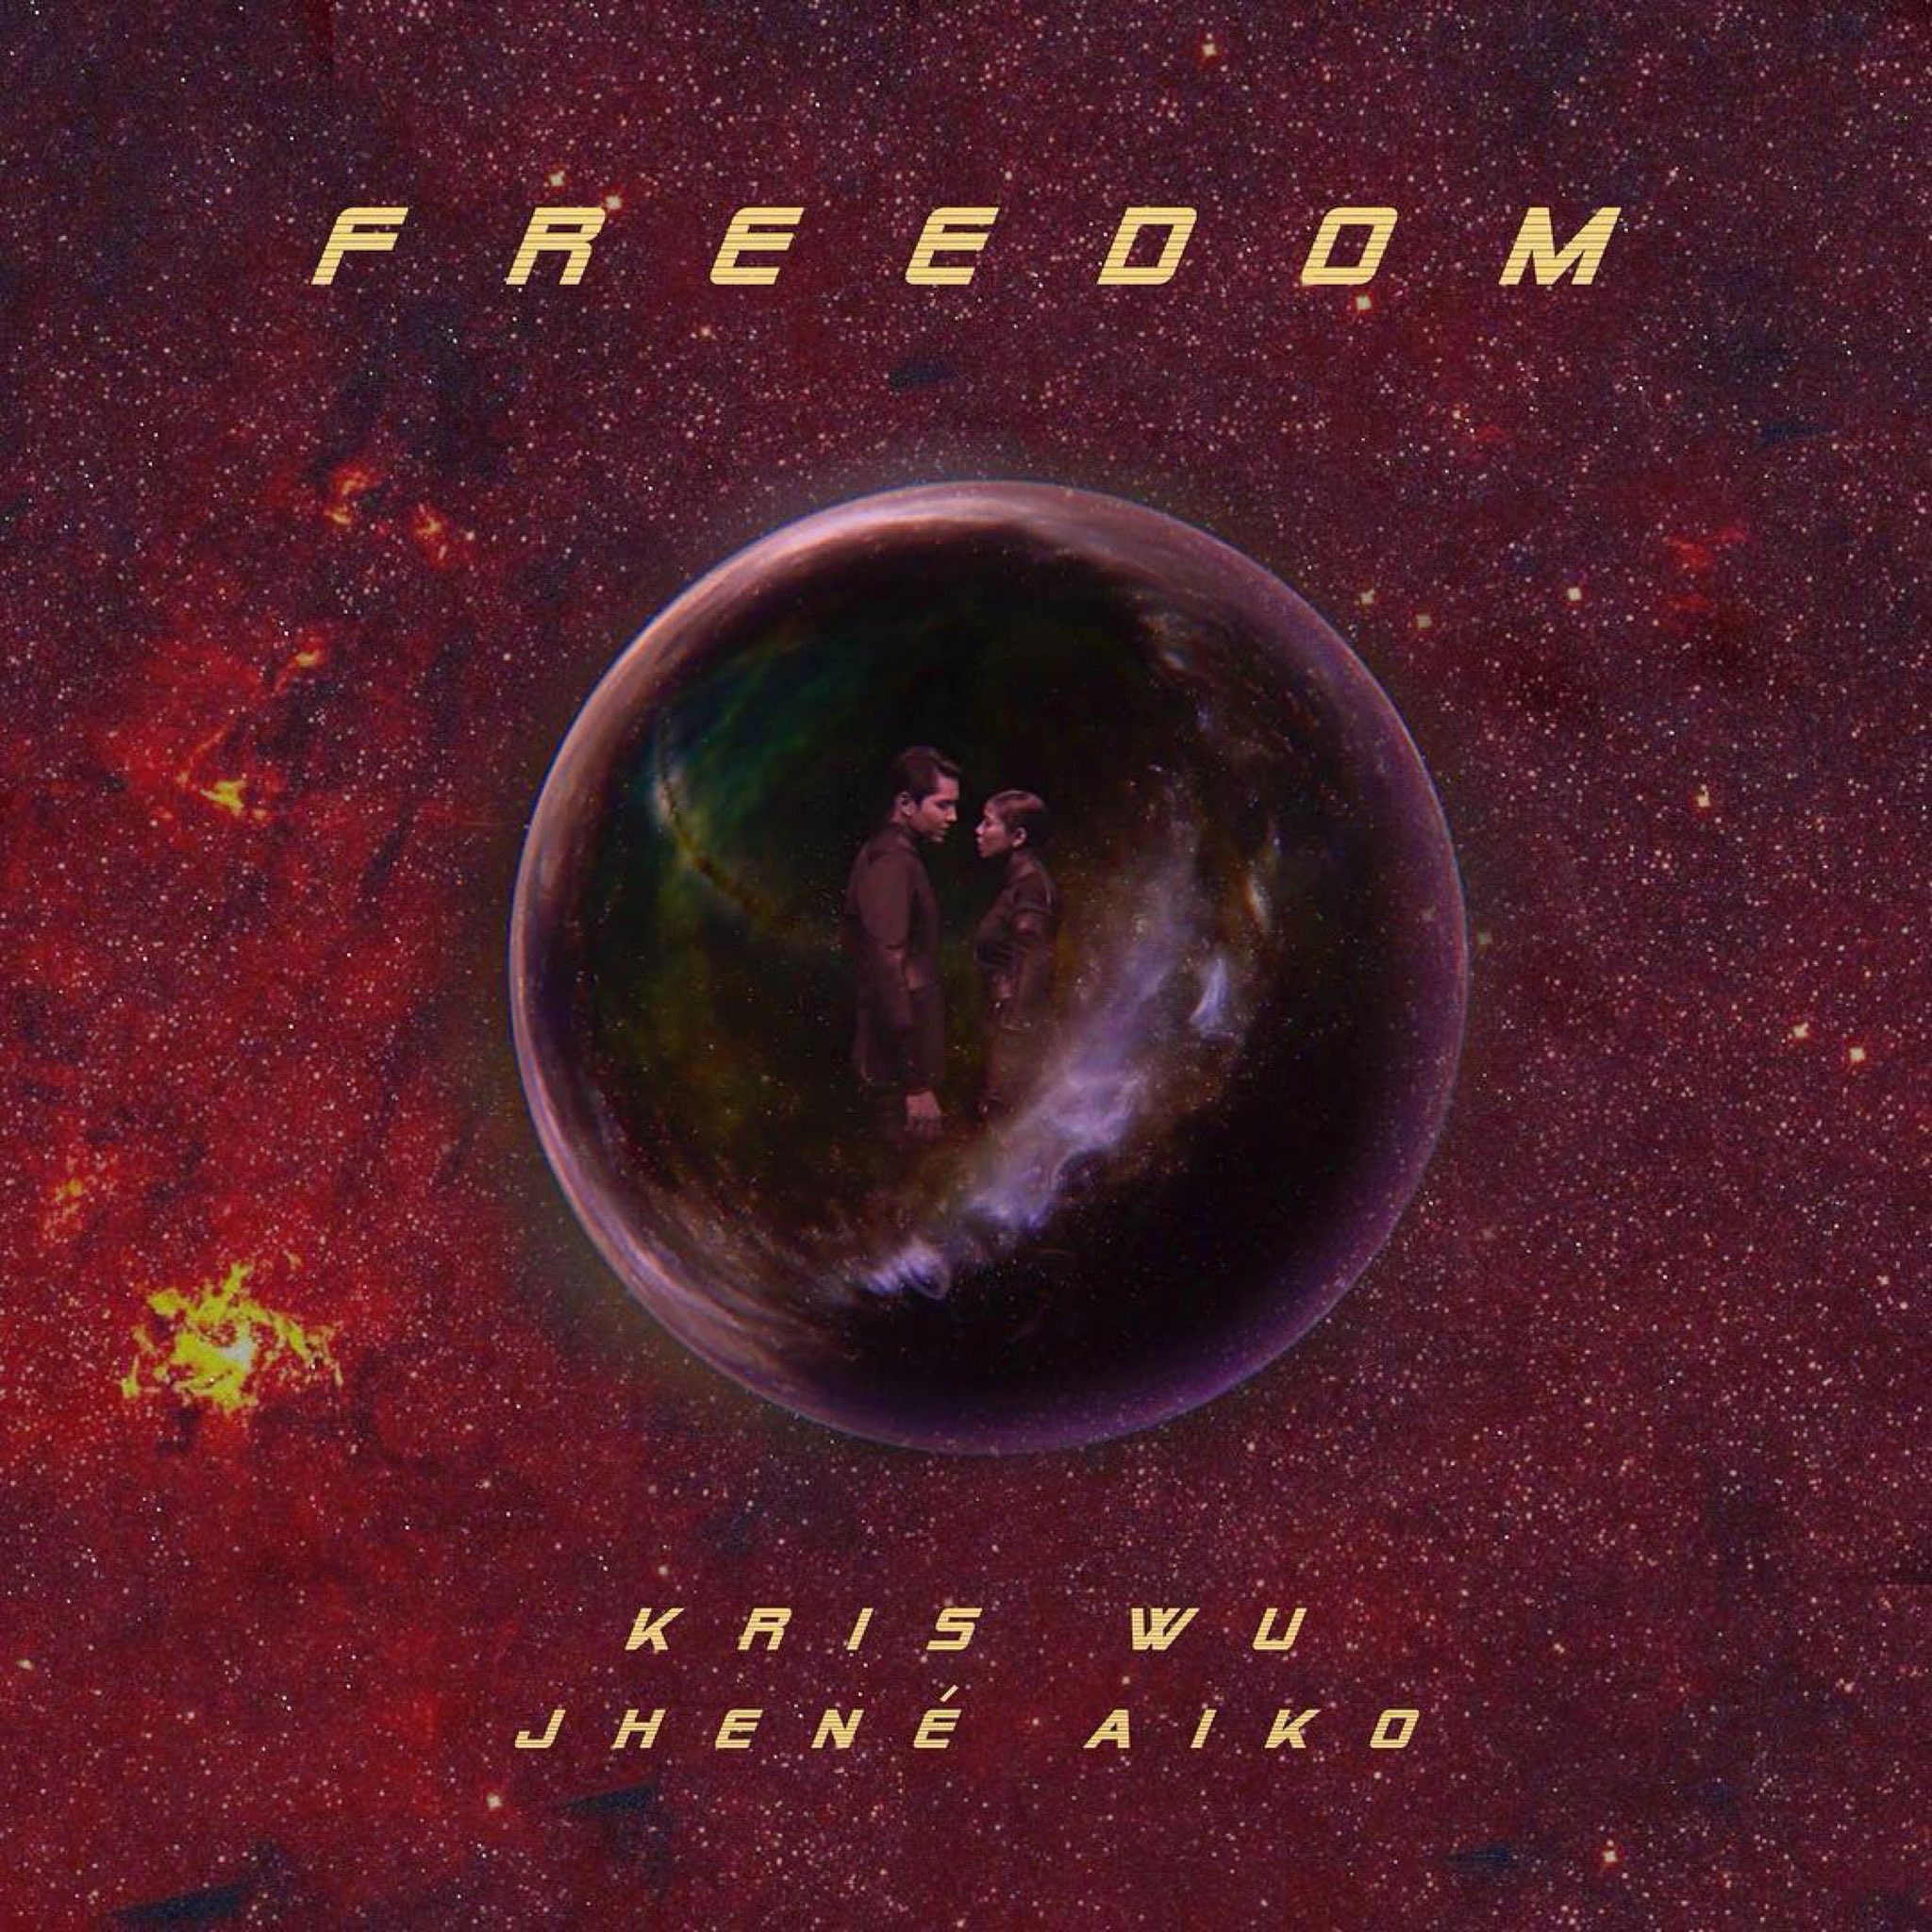 Major #UMG Collab Alert �� #KrisWu x  @JheneAiko 'Freedom'�� Out Friday. https://t.co/iVWf9siM28 https://t.co/hKS4munyd1